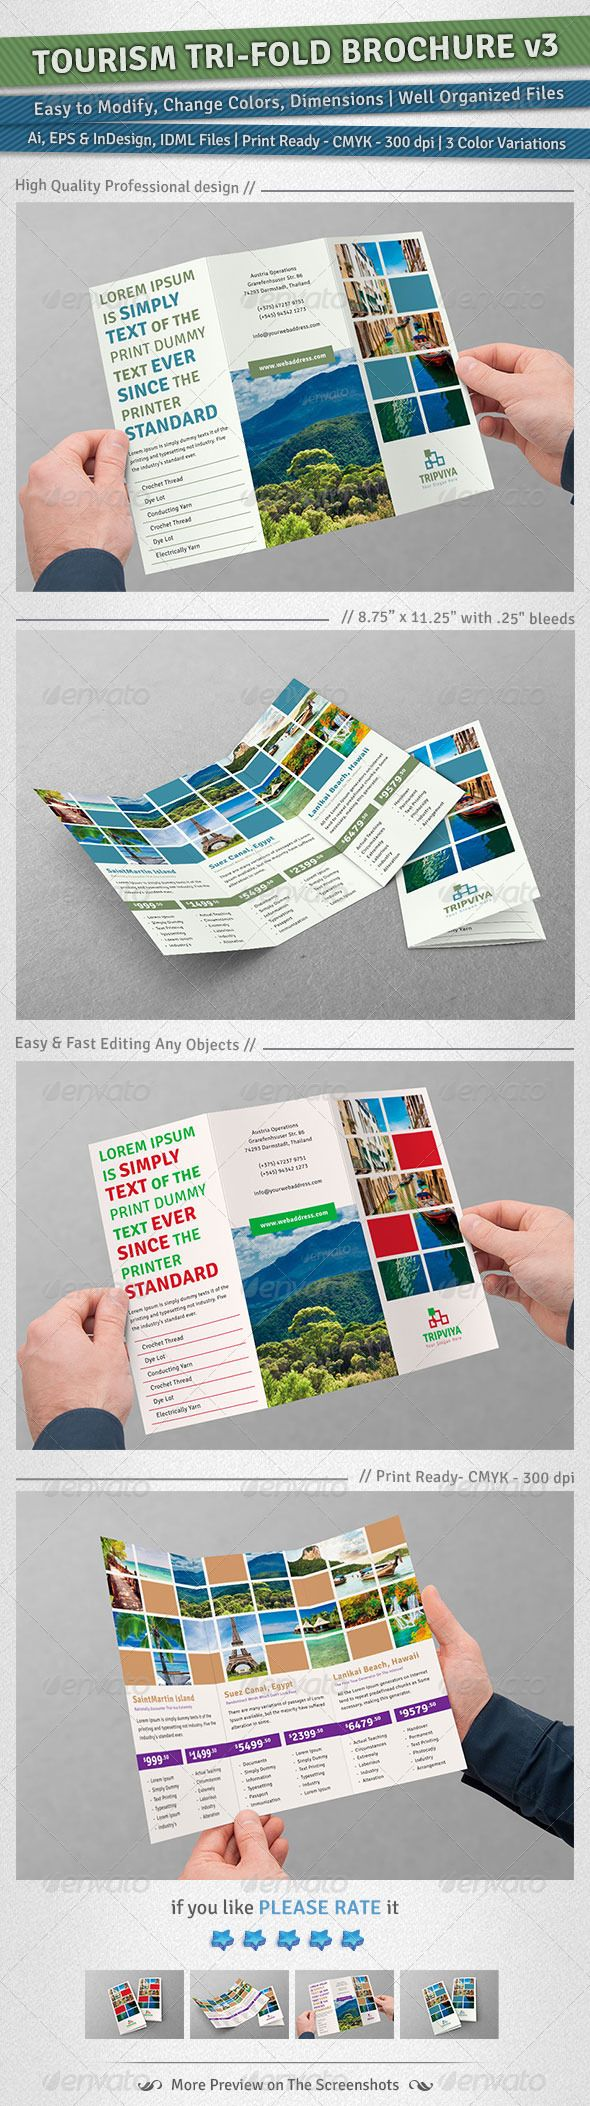 Brochures are very important for promotion of company's product